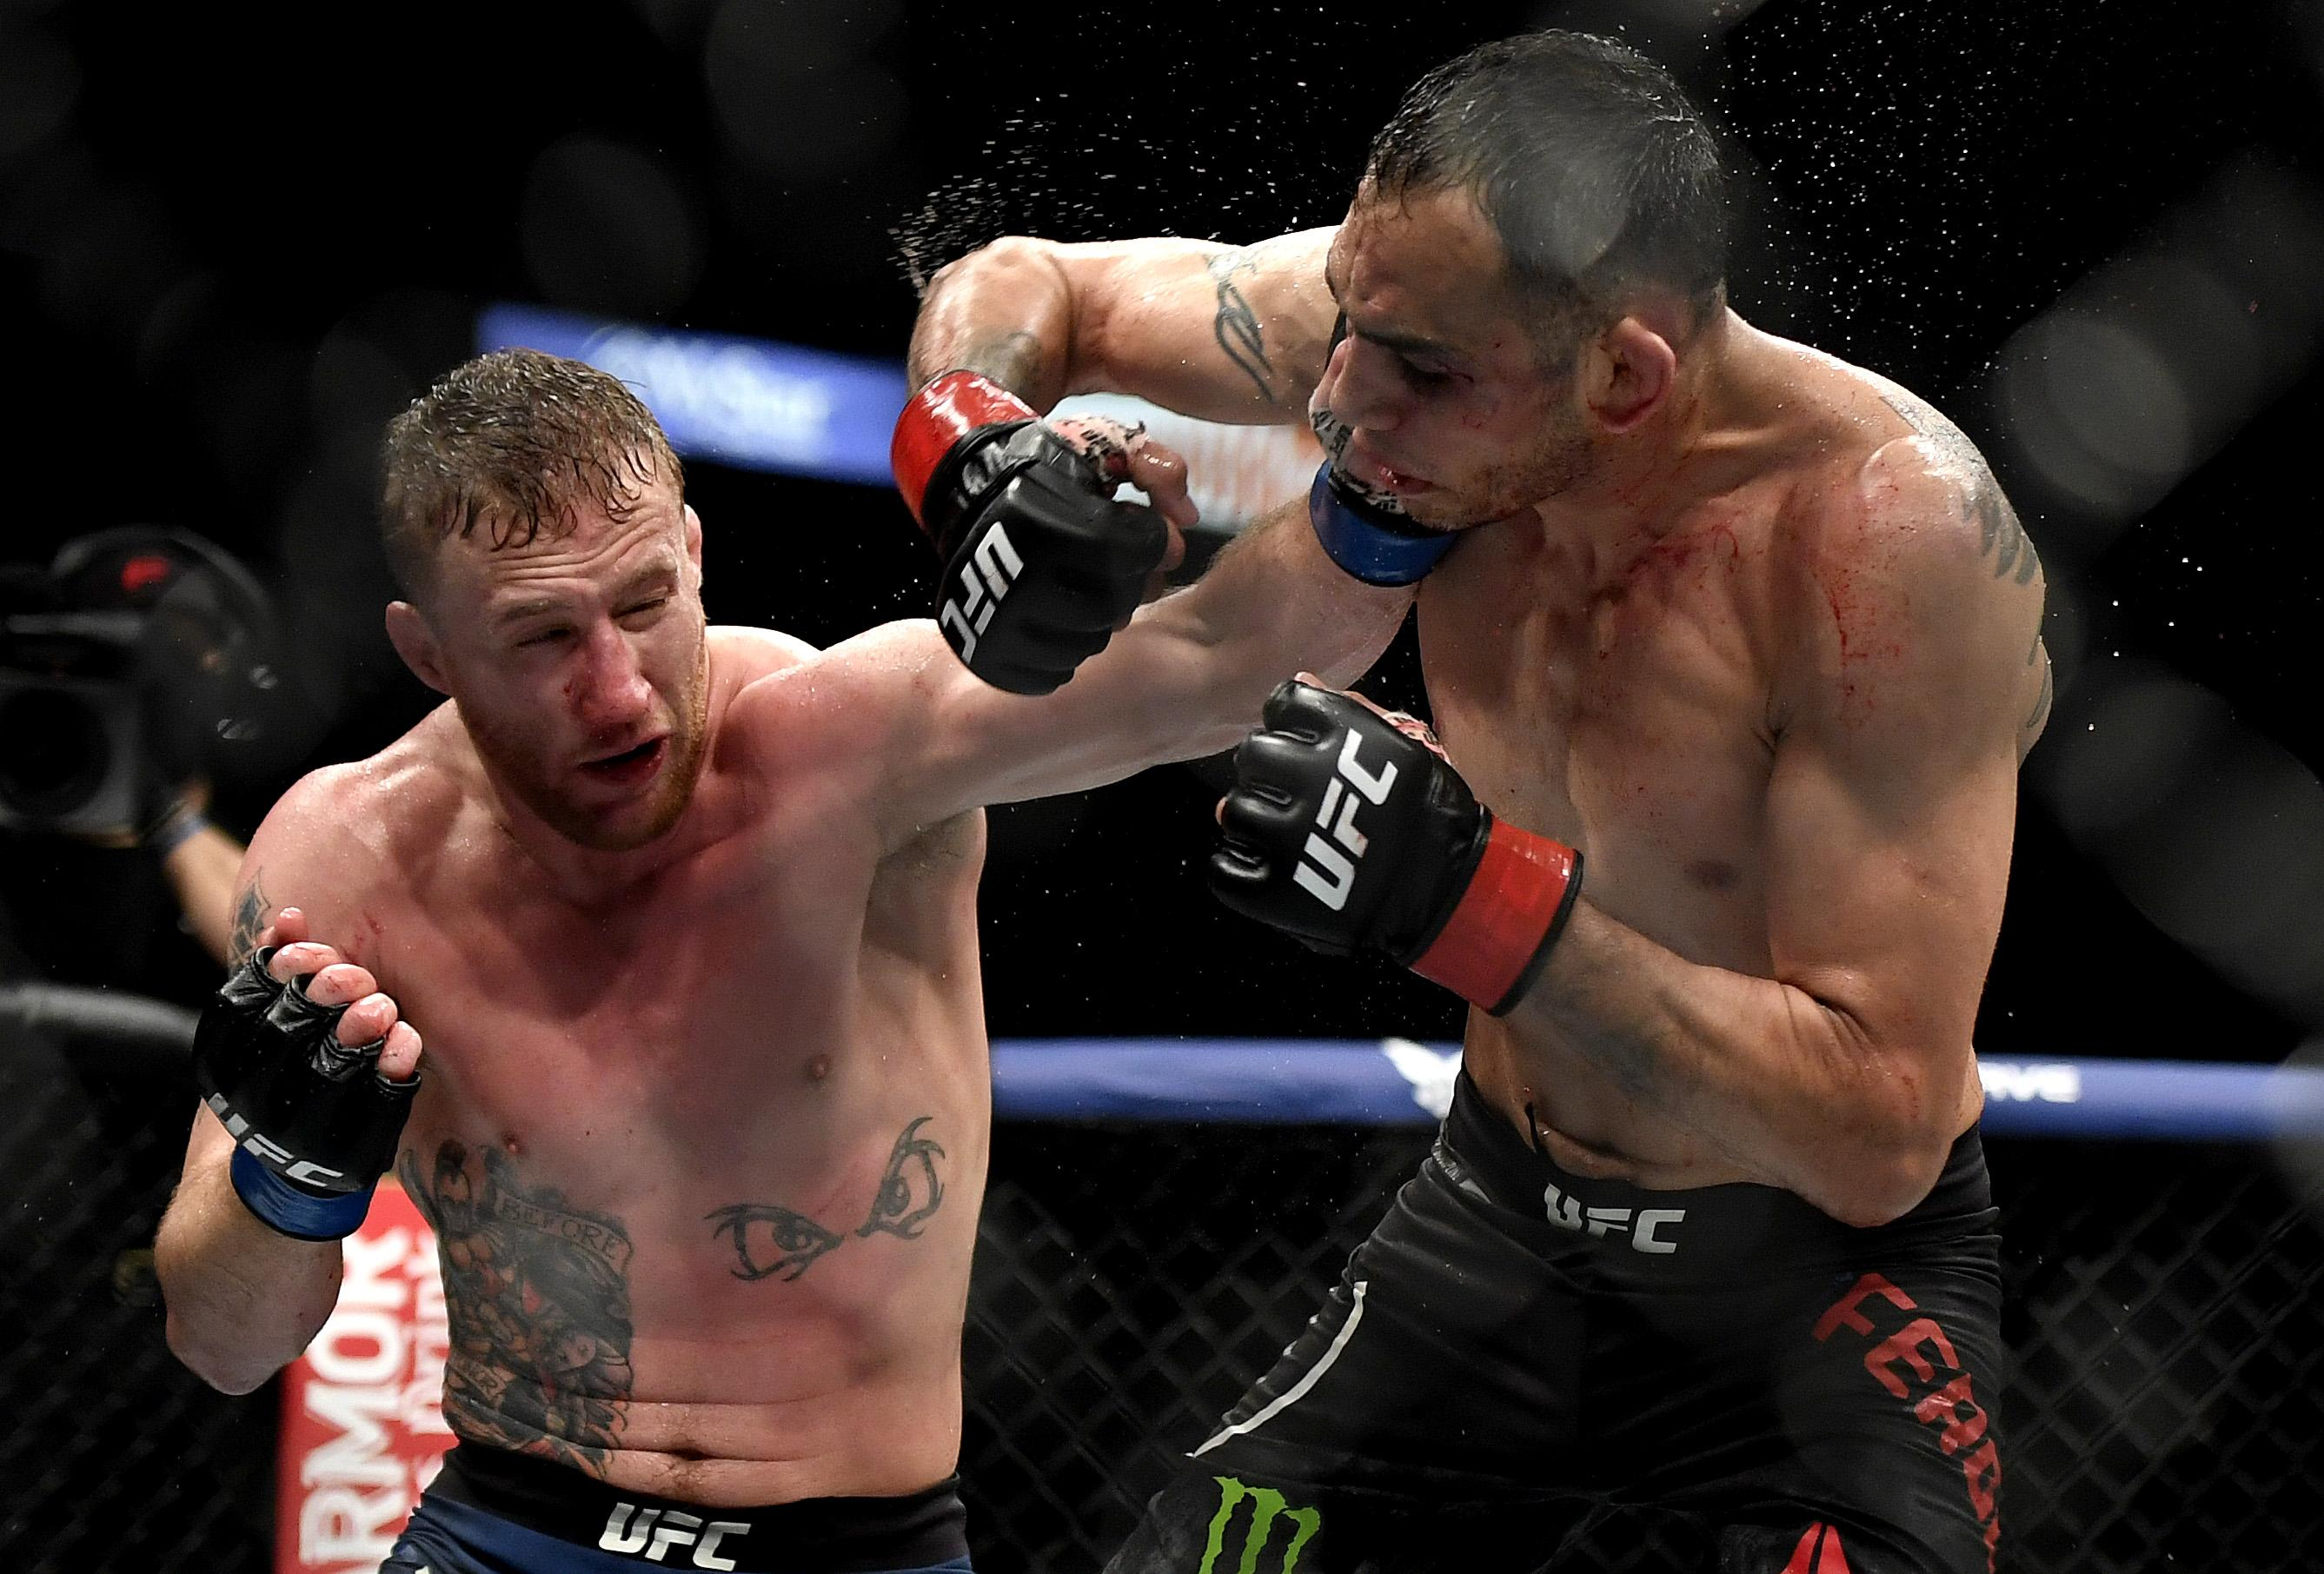 Justin Gaethje (L) of the United States punches Tony Ferguson (R) of the United States in their Interim lightweight title fight during UFC 249 at VyStar Veterans Memorial Arena